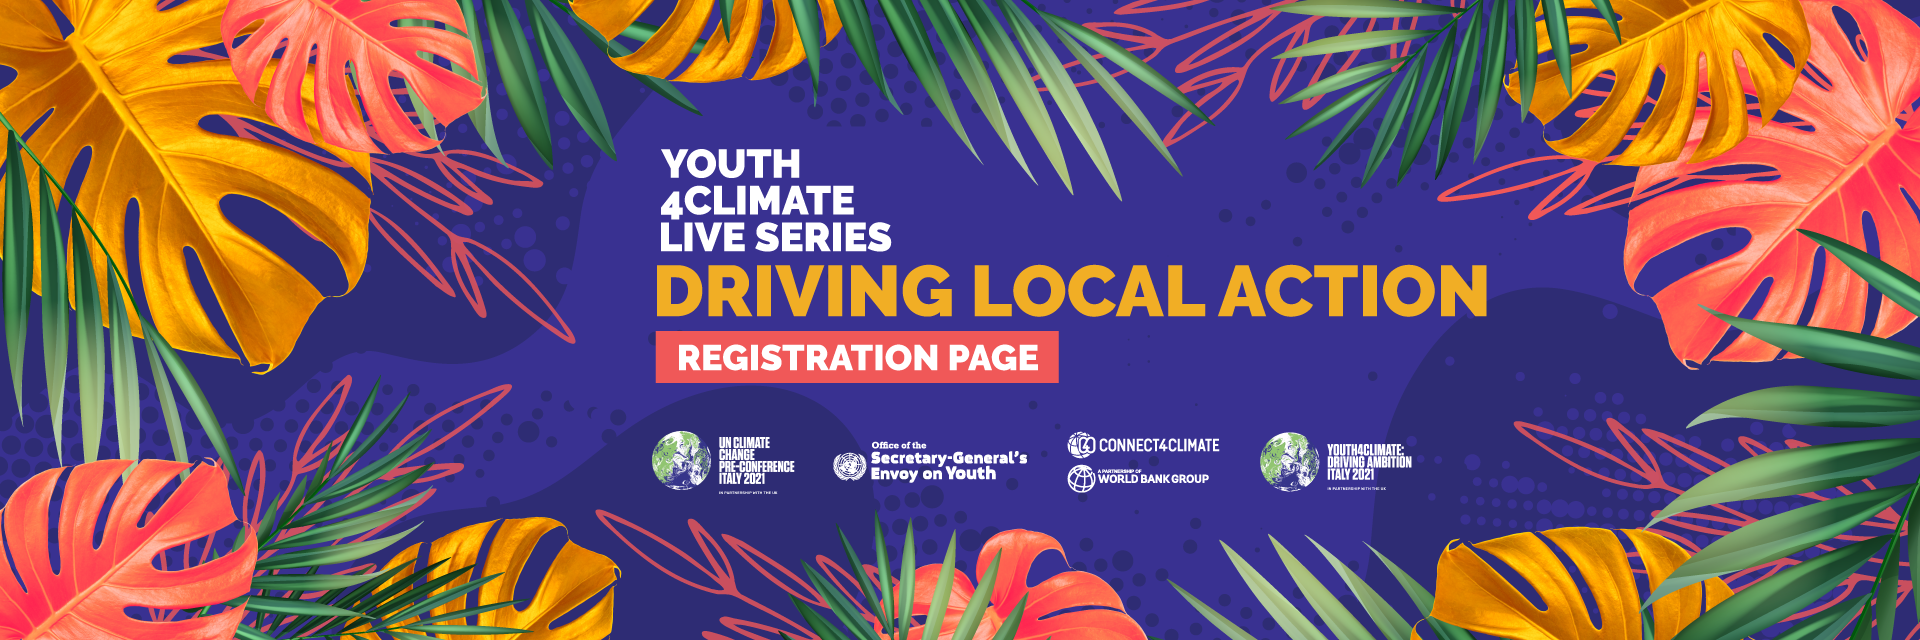 #YOUTH4CLIMATE LIVE SERIES